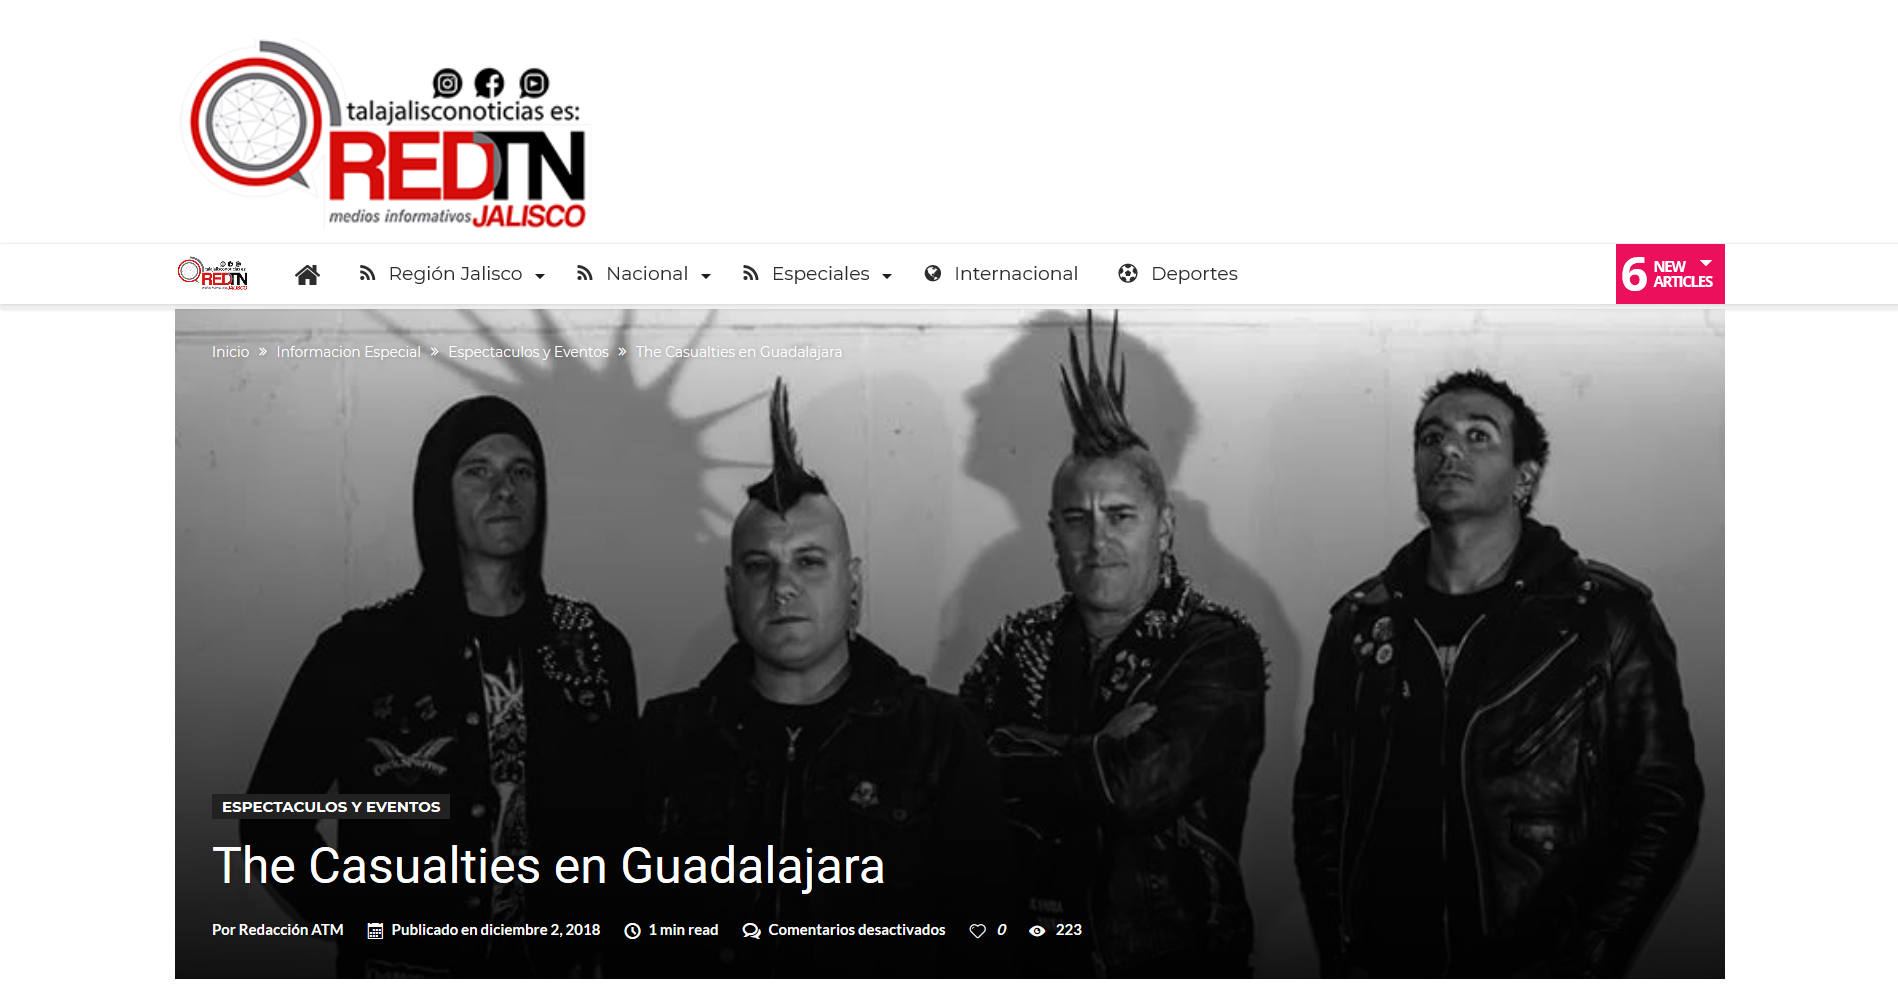 Screenshot_2019-05-29 The Casualties en Guadalajara — Tala Jalisco Noticias - REDTN.png